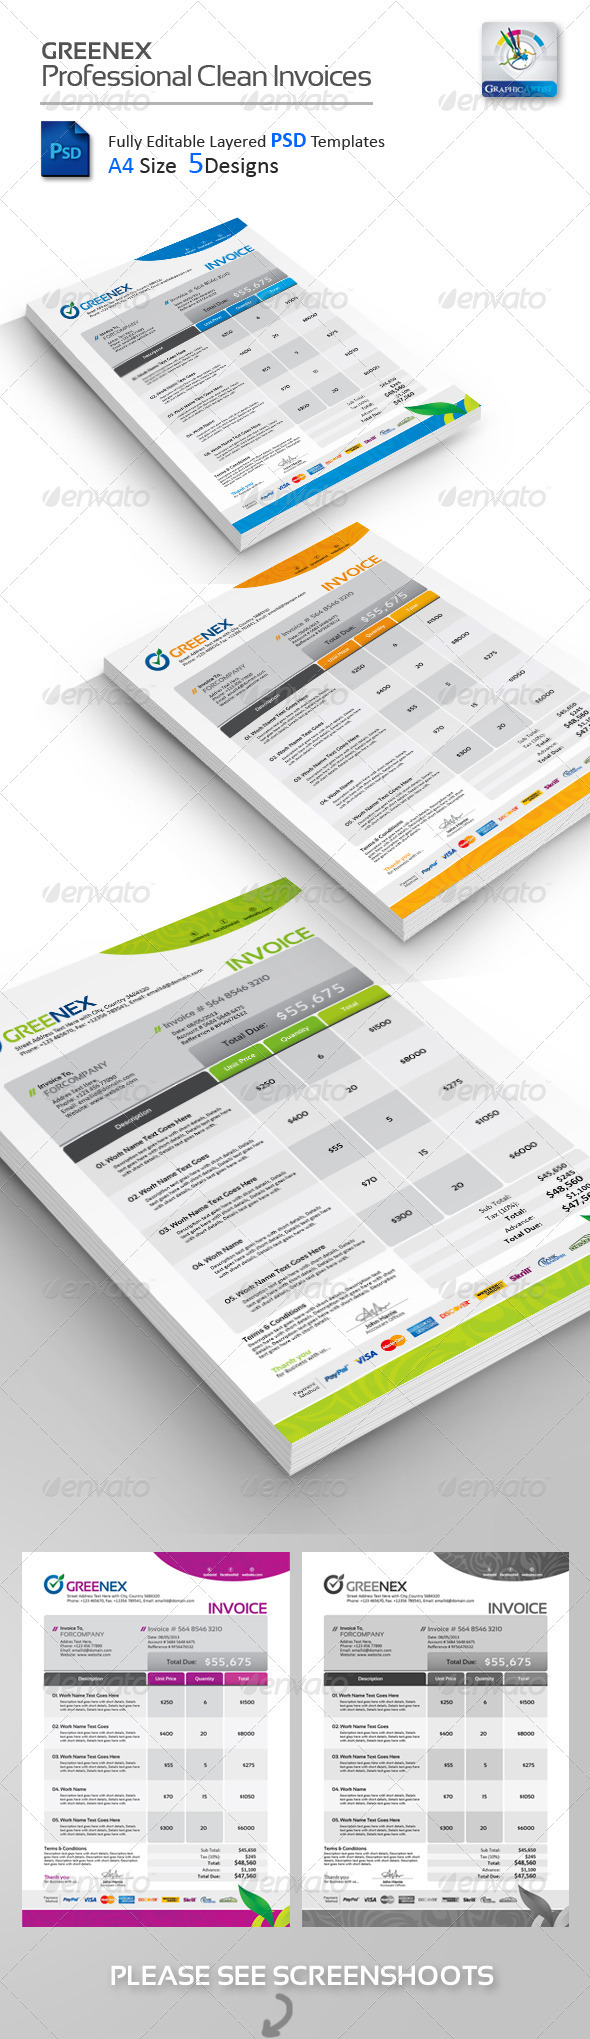 buy greenex creative psd invoices by graphicartist on graphicriver greenex creative invoices psd templates professional invoice psd templates in 5